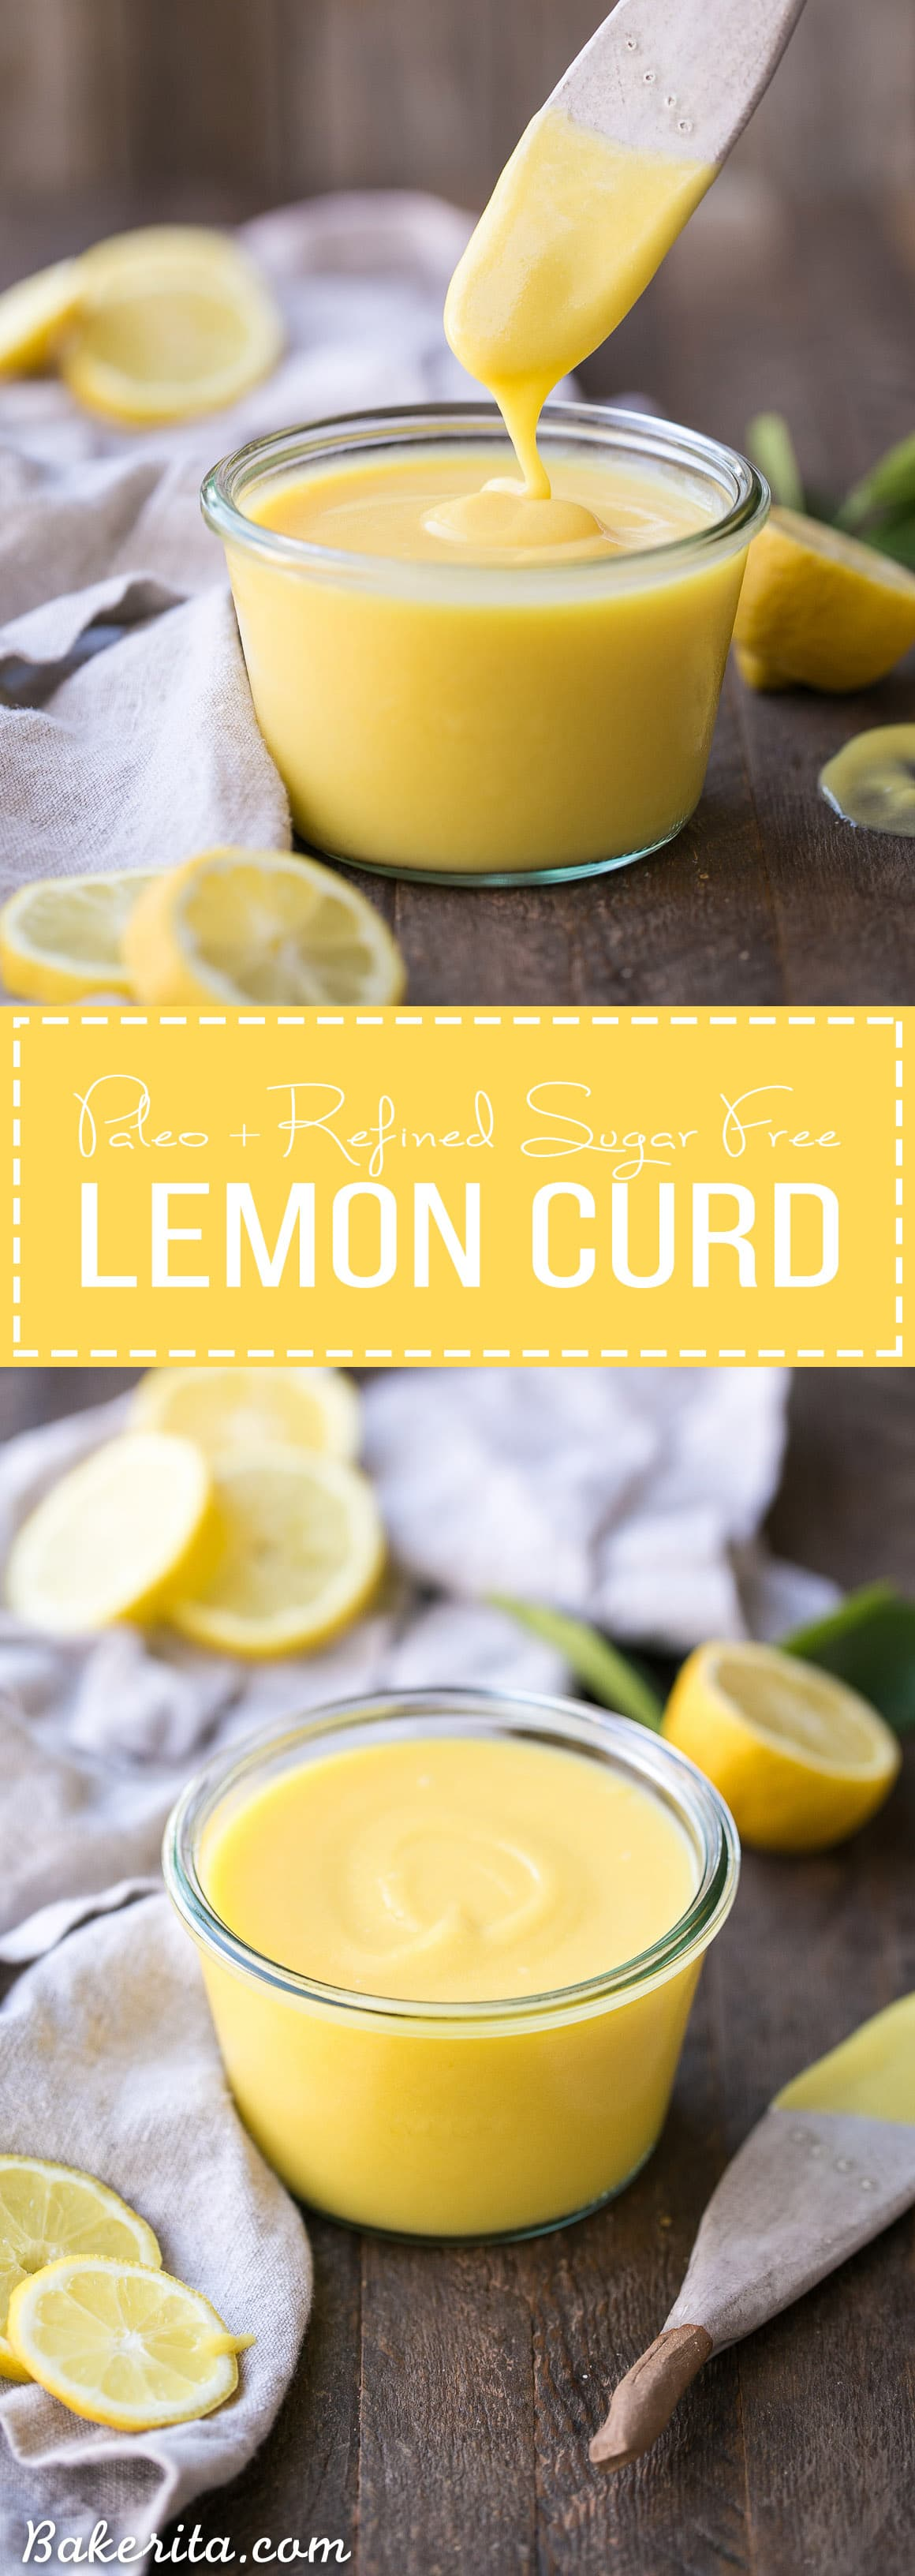 how to make curd fast at home